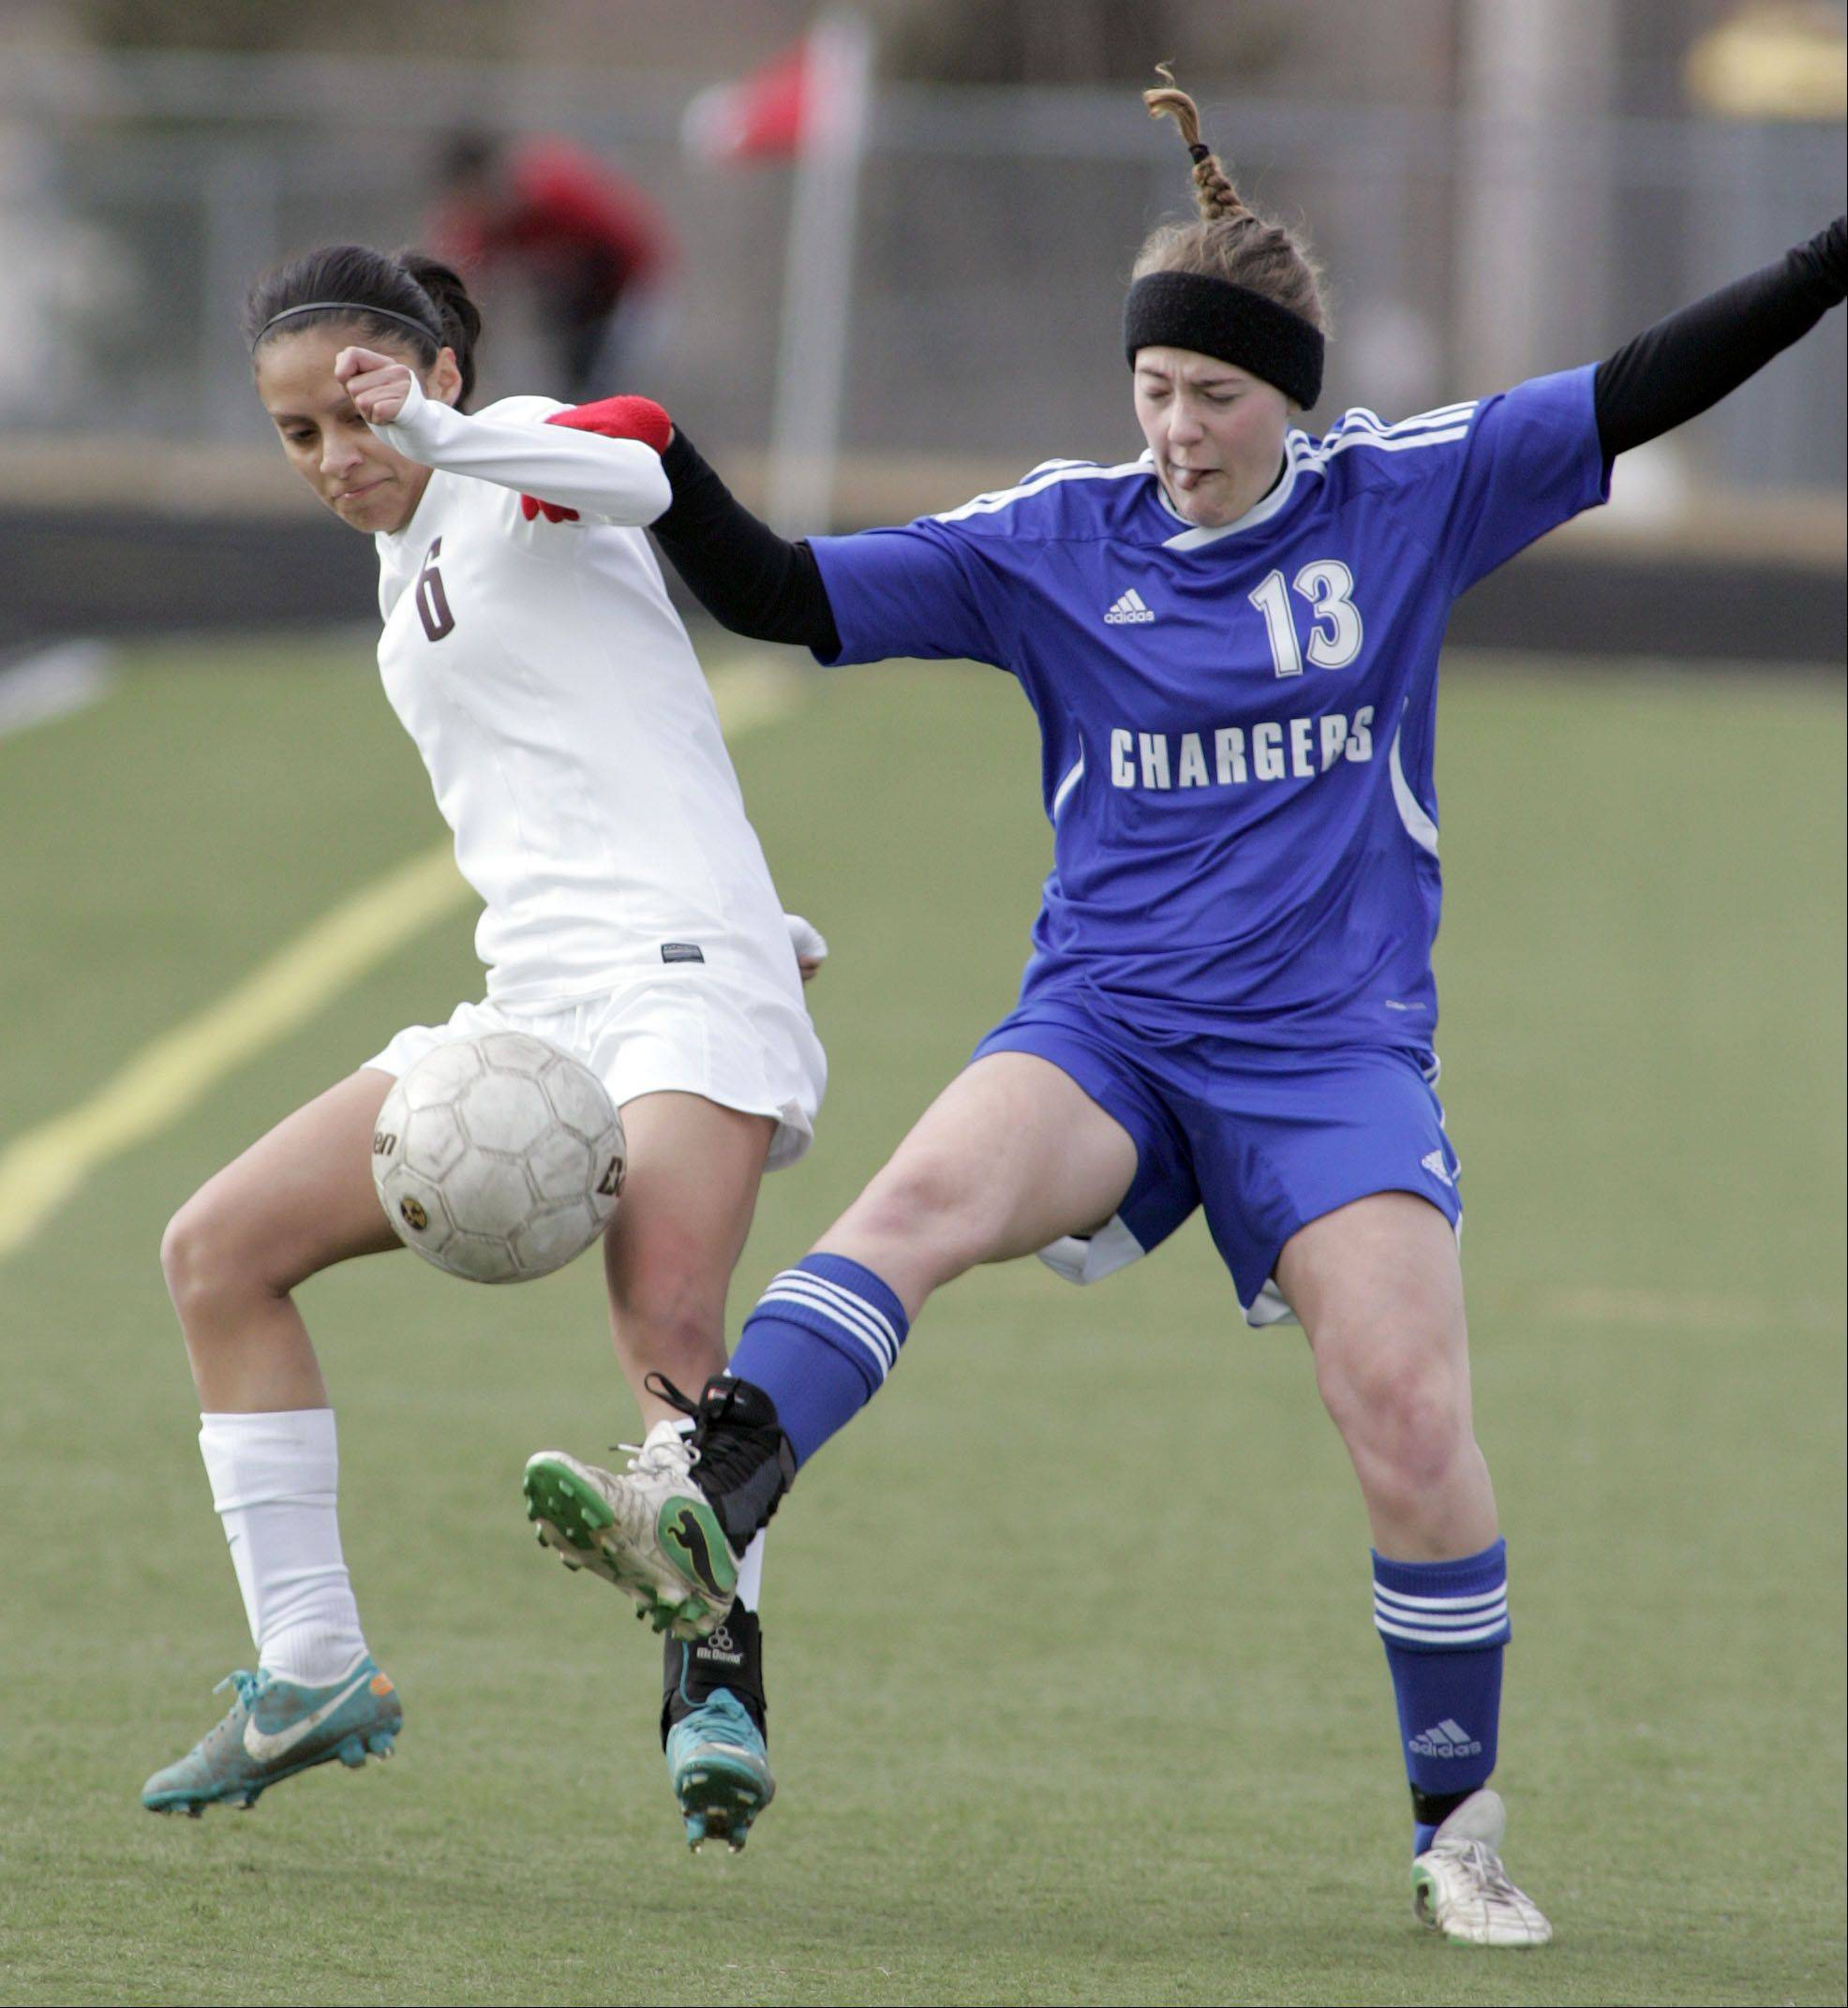 Elgin's Daisy Gomez, 6, battles Dundee-Crown's Cori Schrade, 13, during Wednesday's soccer game in the South Elgin Spring Break tournament at Millennium Field in Streamwood.